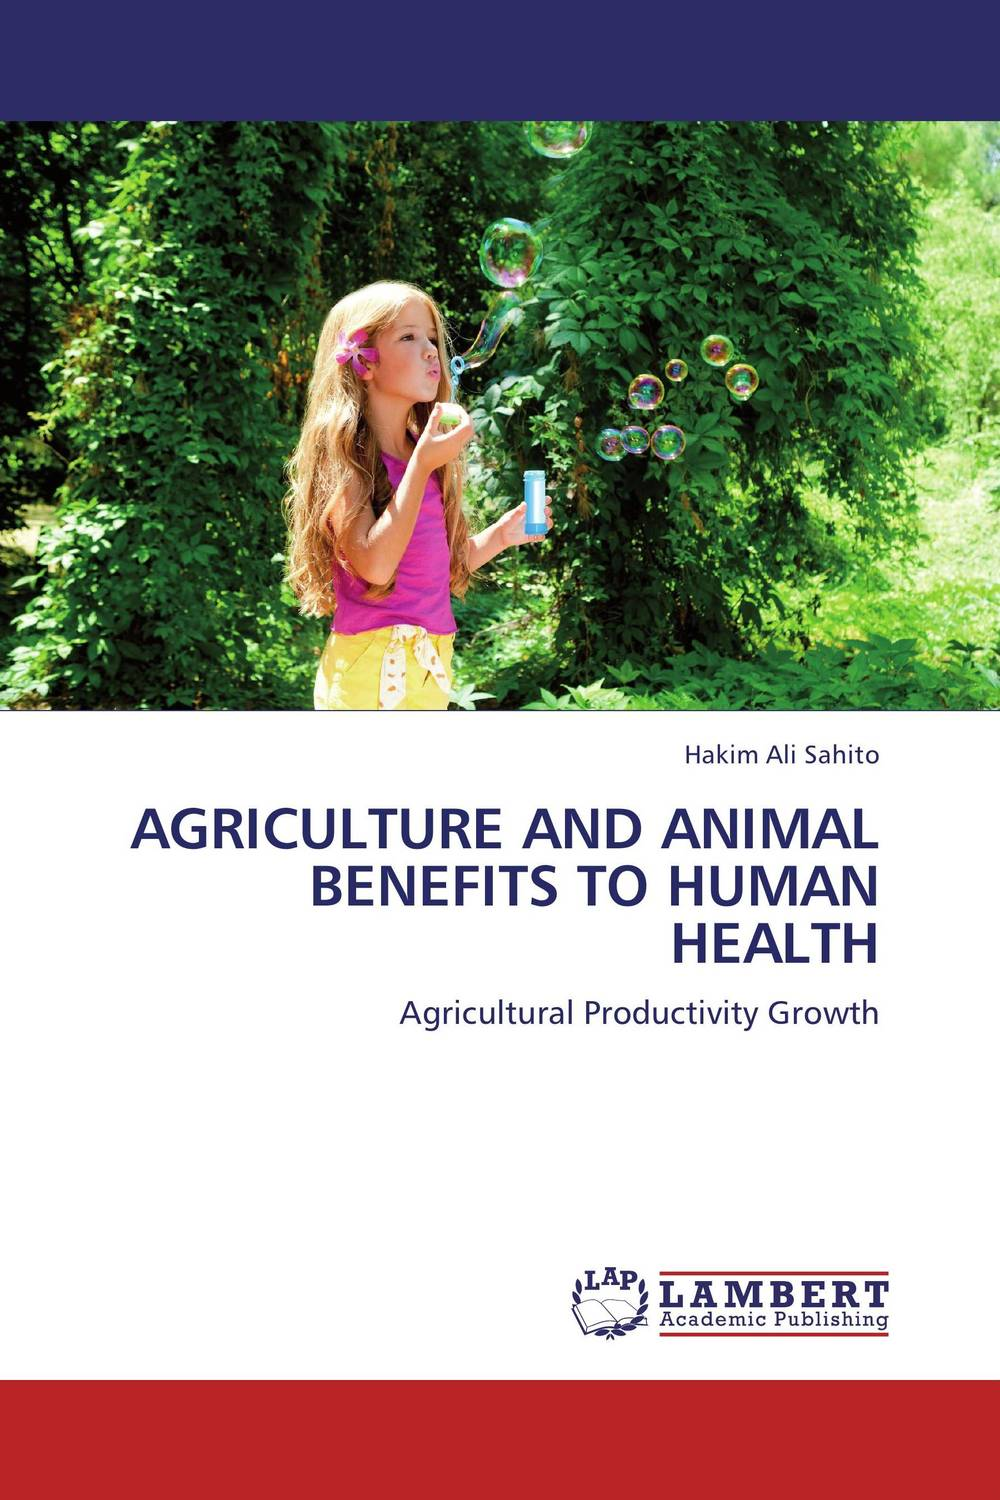 AGRICULTURE AND ANIMAL BENEFITS TO HUMAN HEALTH